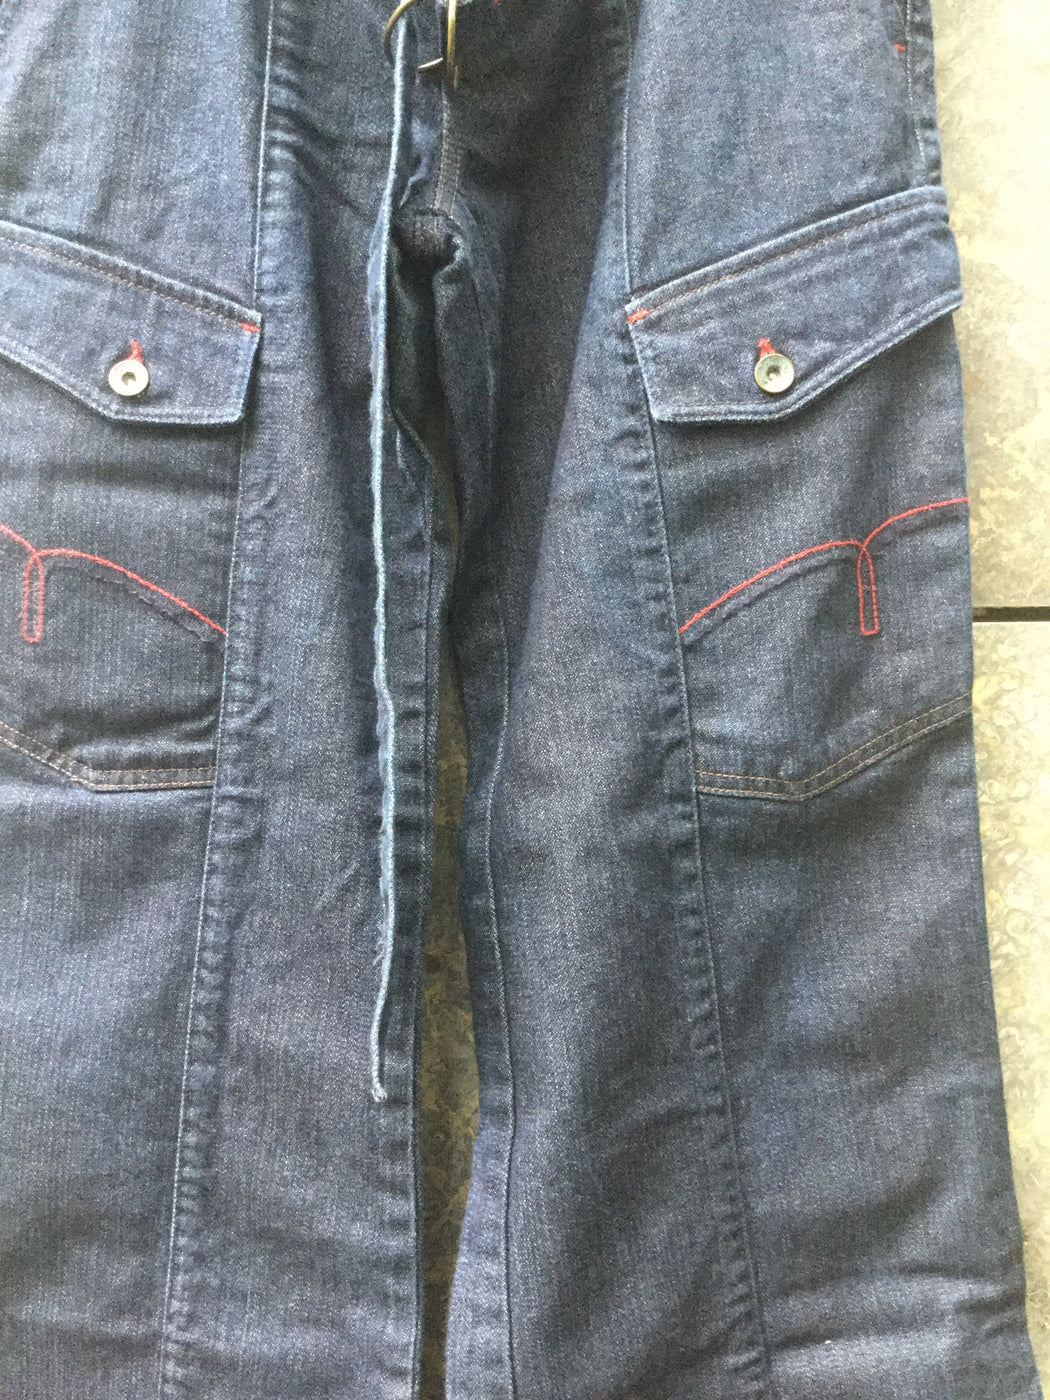 Navy Denim Contemporary Main Jeans Multi Pocket Size 29/30